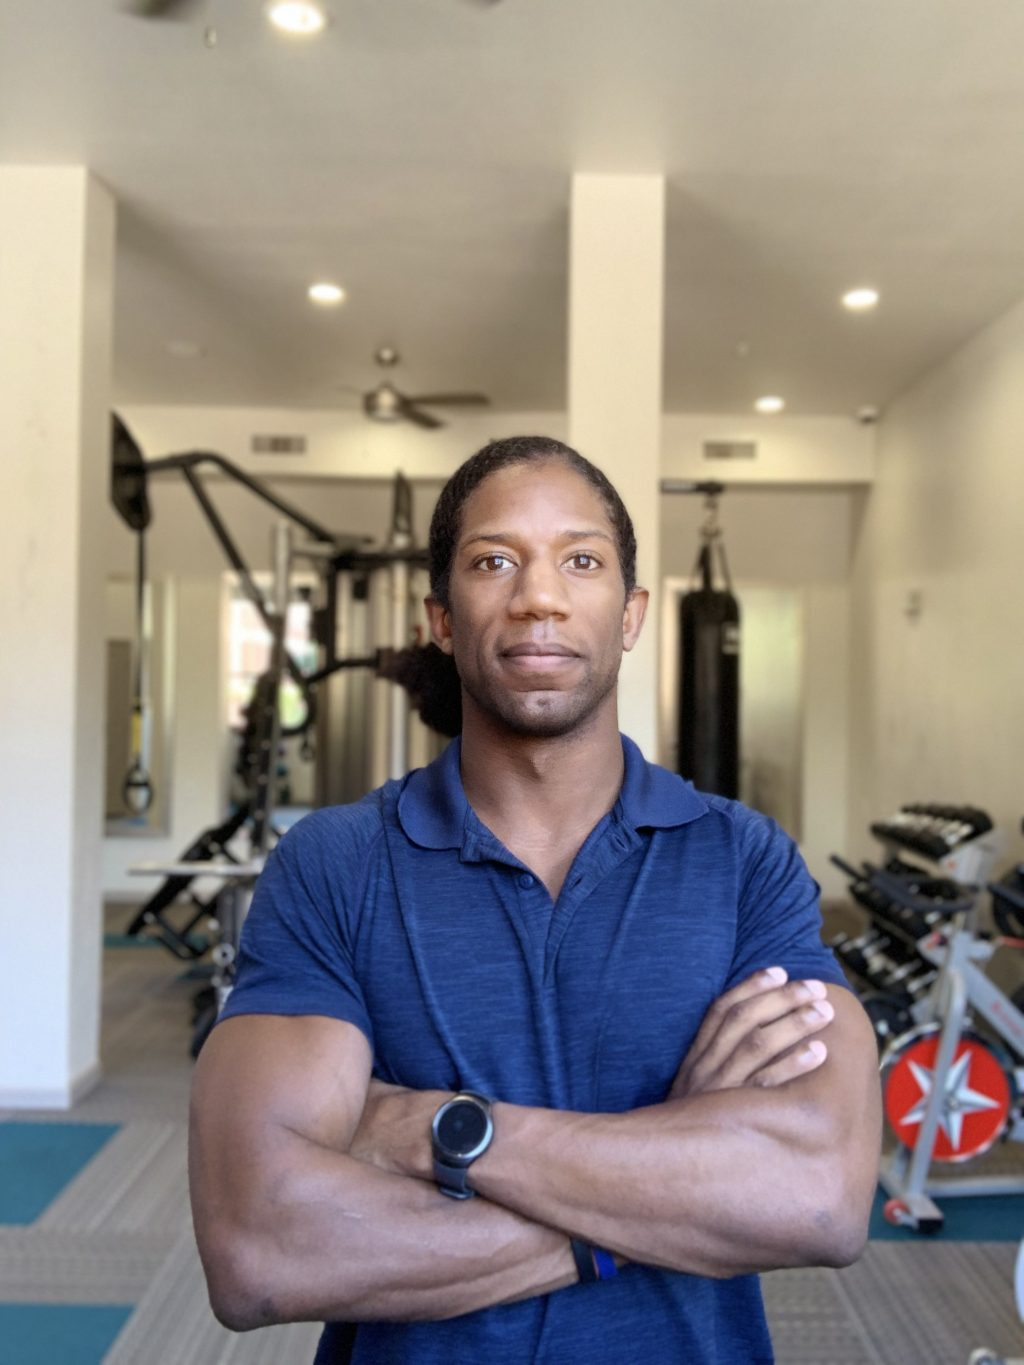 Personal Trainer Dallas, Texas - Ryan McDowell